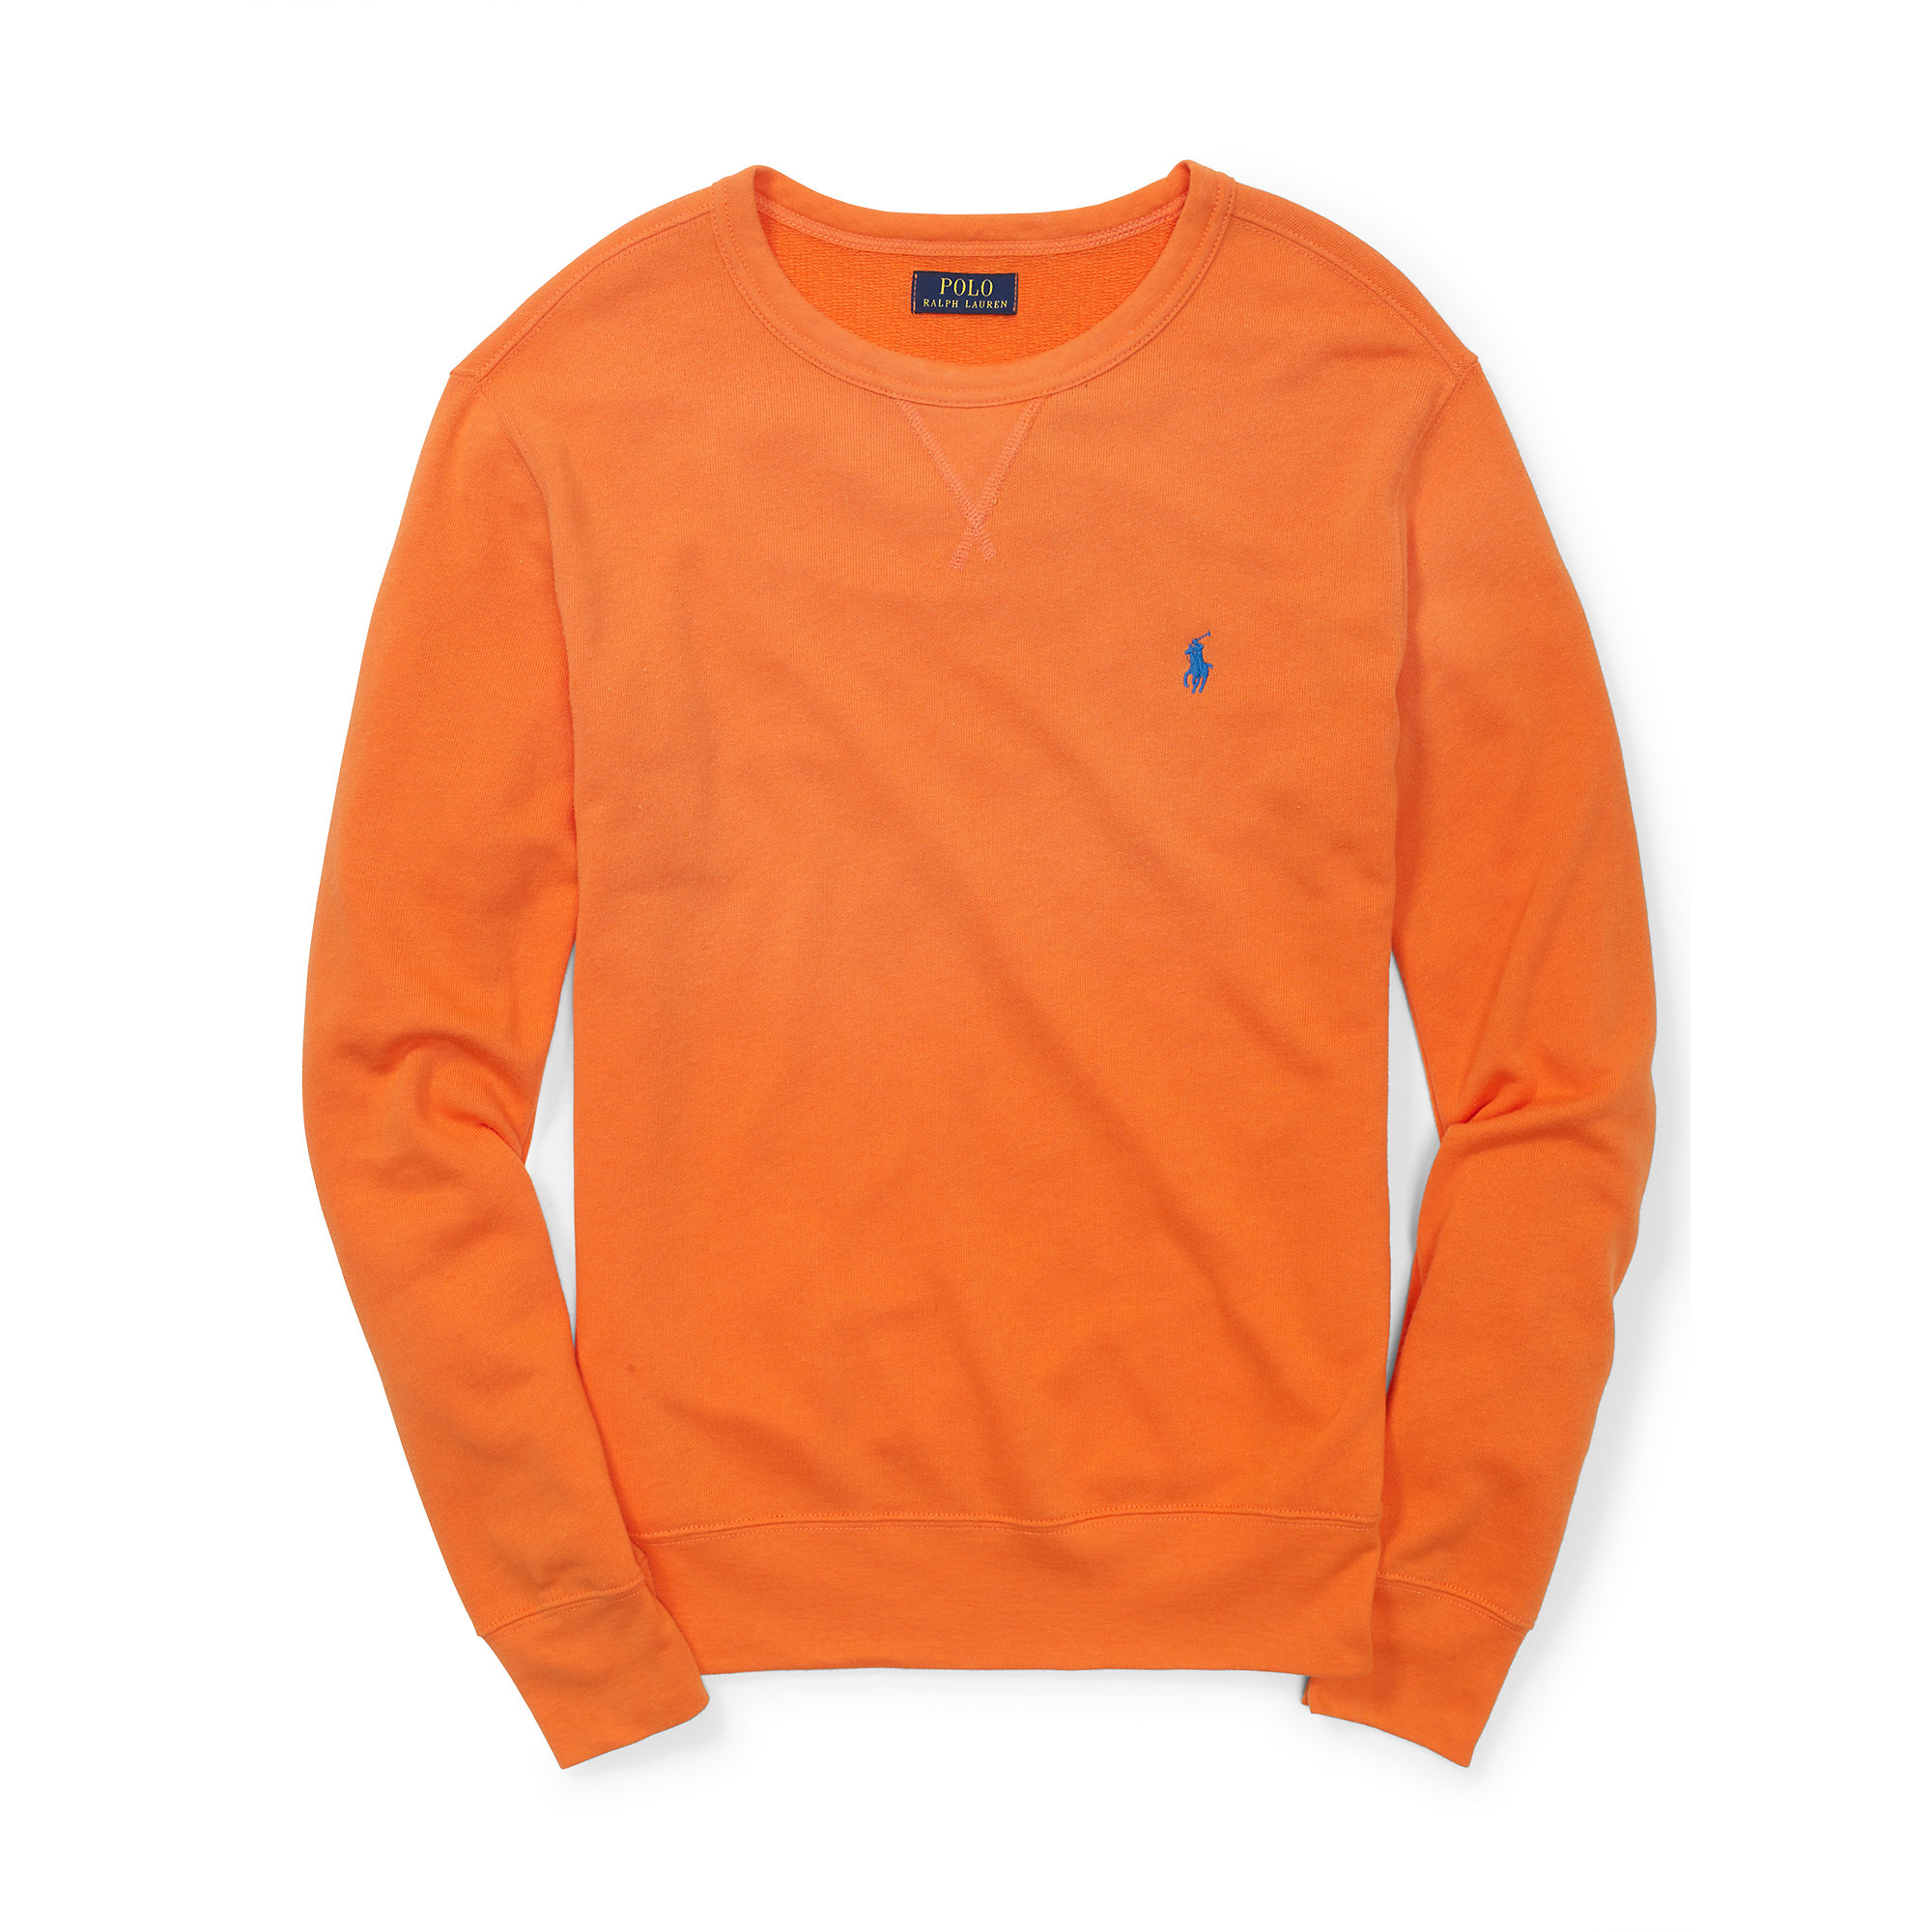 51a9a5f4f0d2 ... new zealand lyst polo ralph lauren french terry sweatshirt in orange  for men 6a090 fa0cc